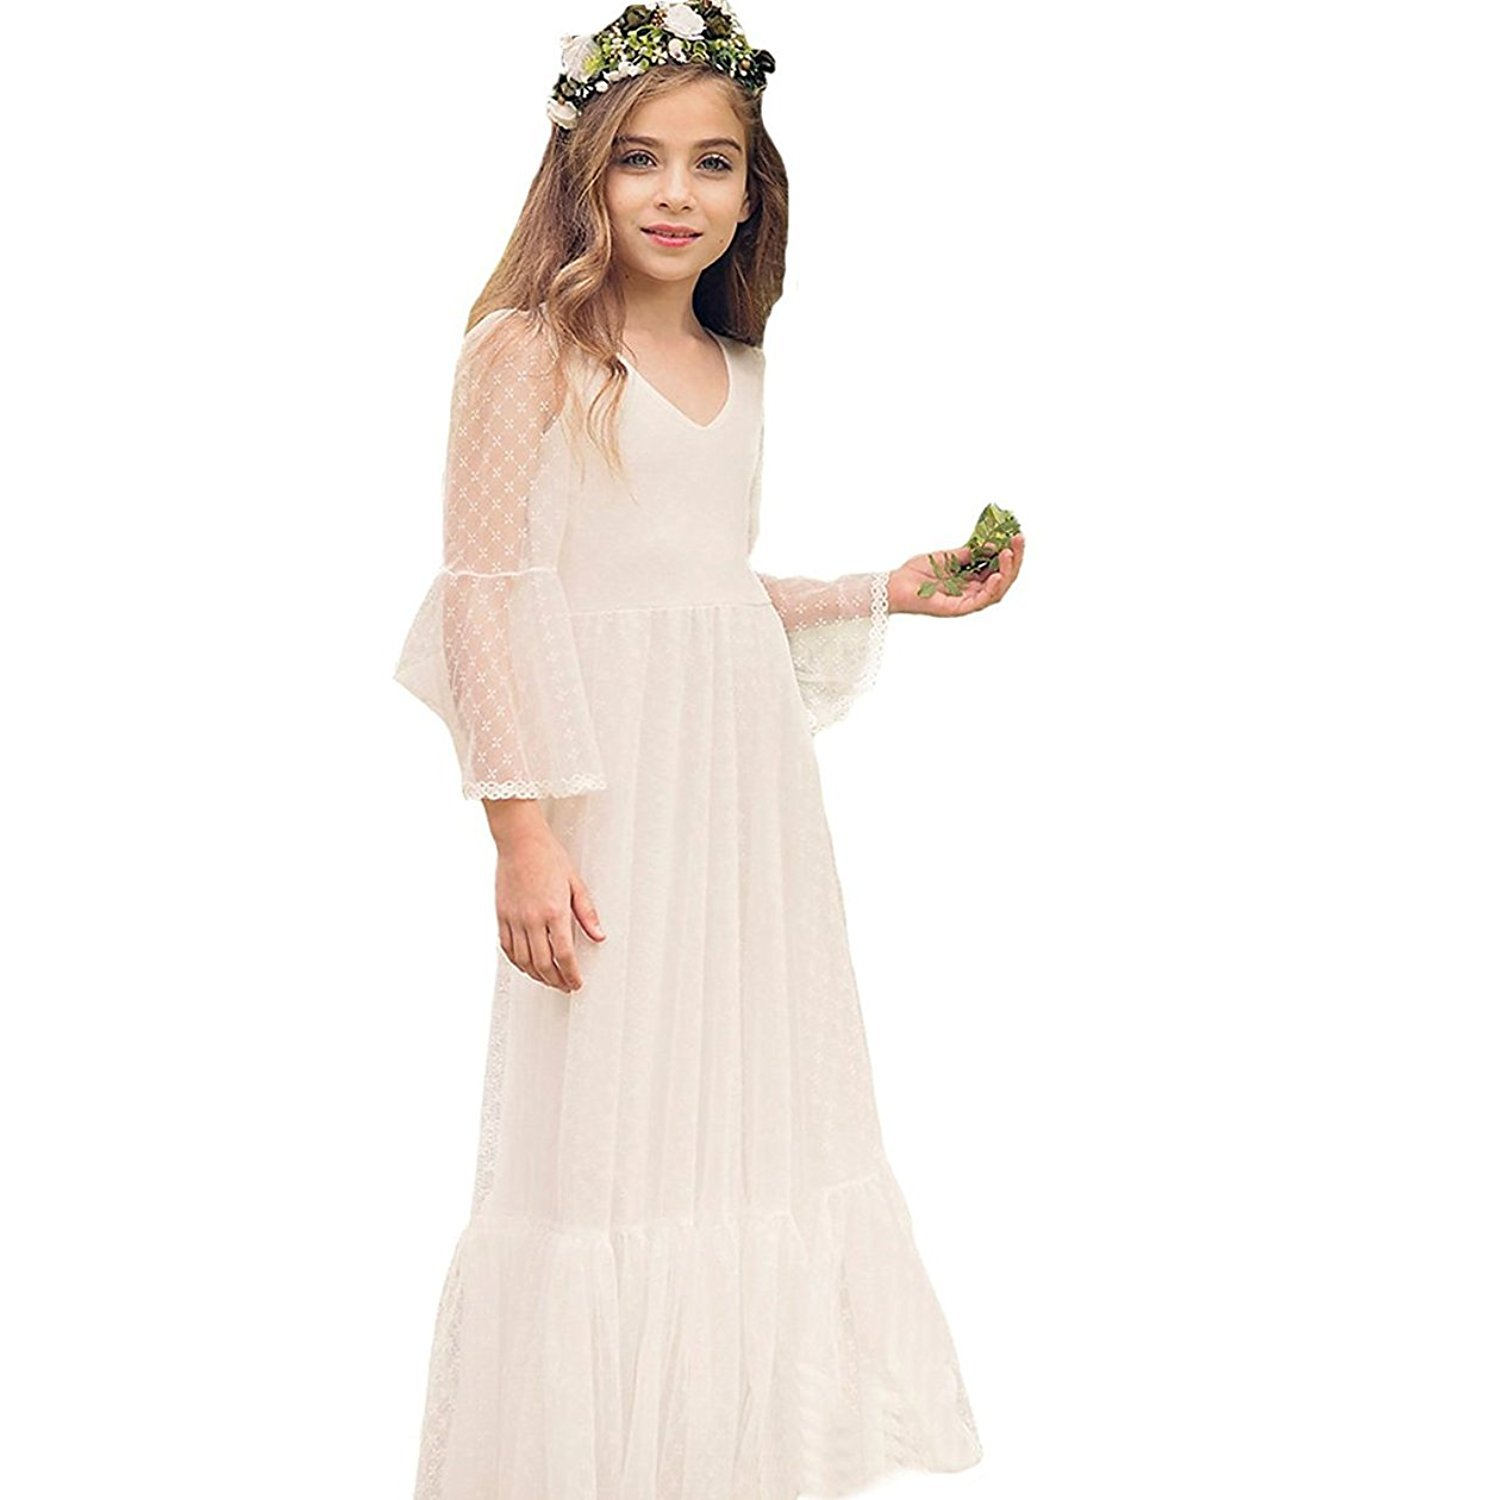 072525848d9 Amazon.com  Sittingley Boho-Chic Flower Girl Dress Lace First Communion  Dresses  Clothing